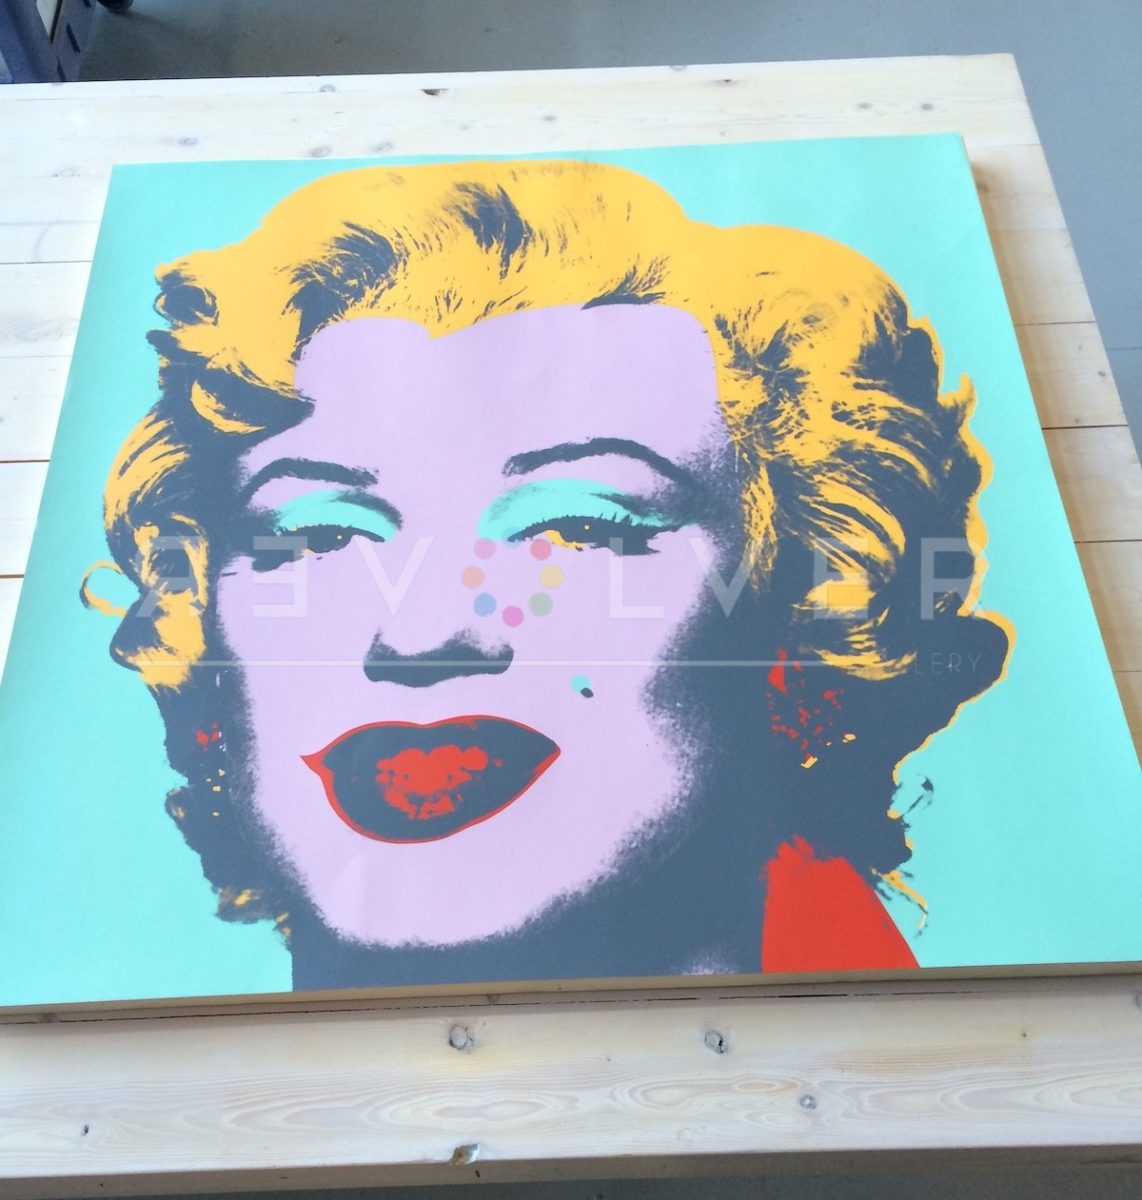 Picture of Marilyn Monroe (Marilyn) (FS II.23), 1967, Purple Blue Yellow, Screen Print Out of Frame, by Andy Warhol